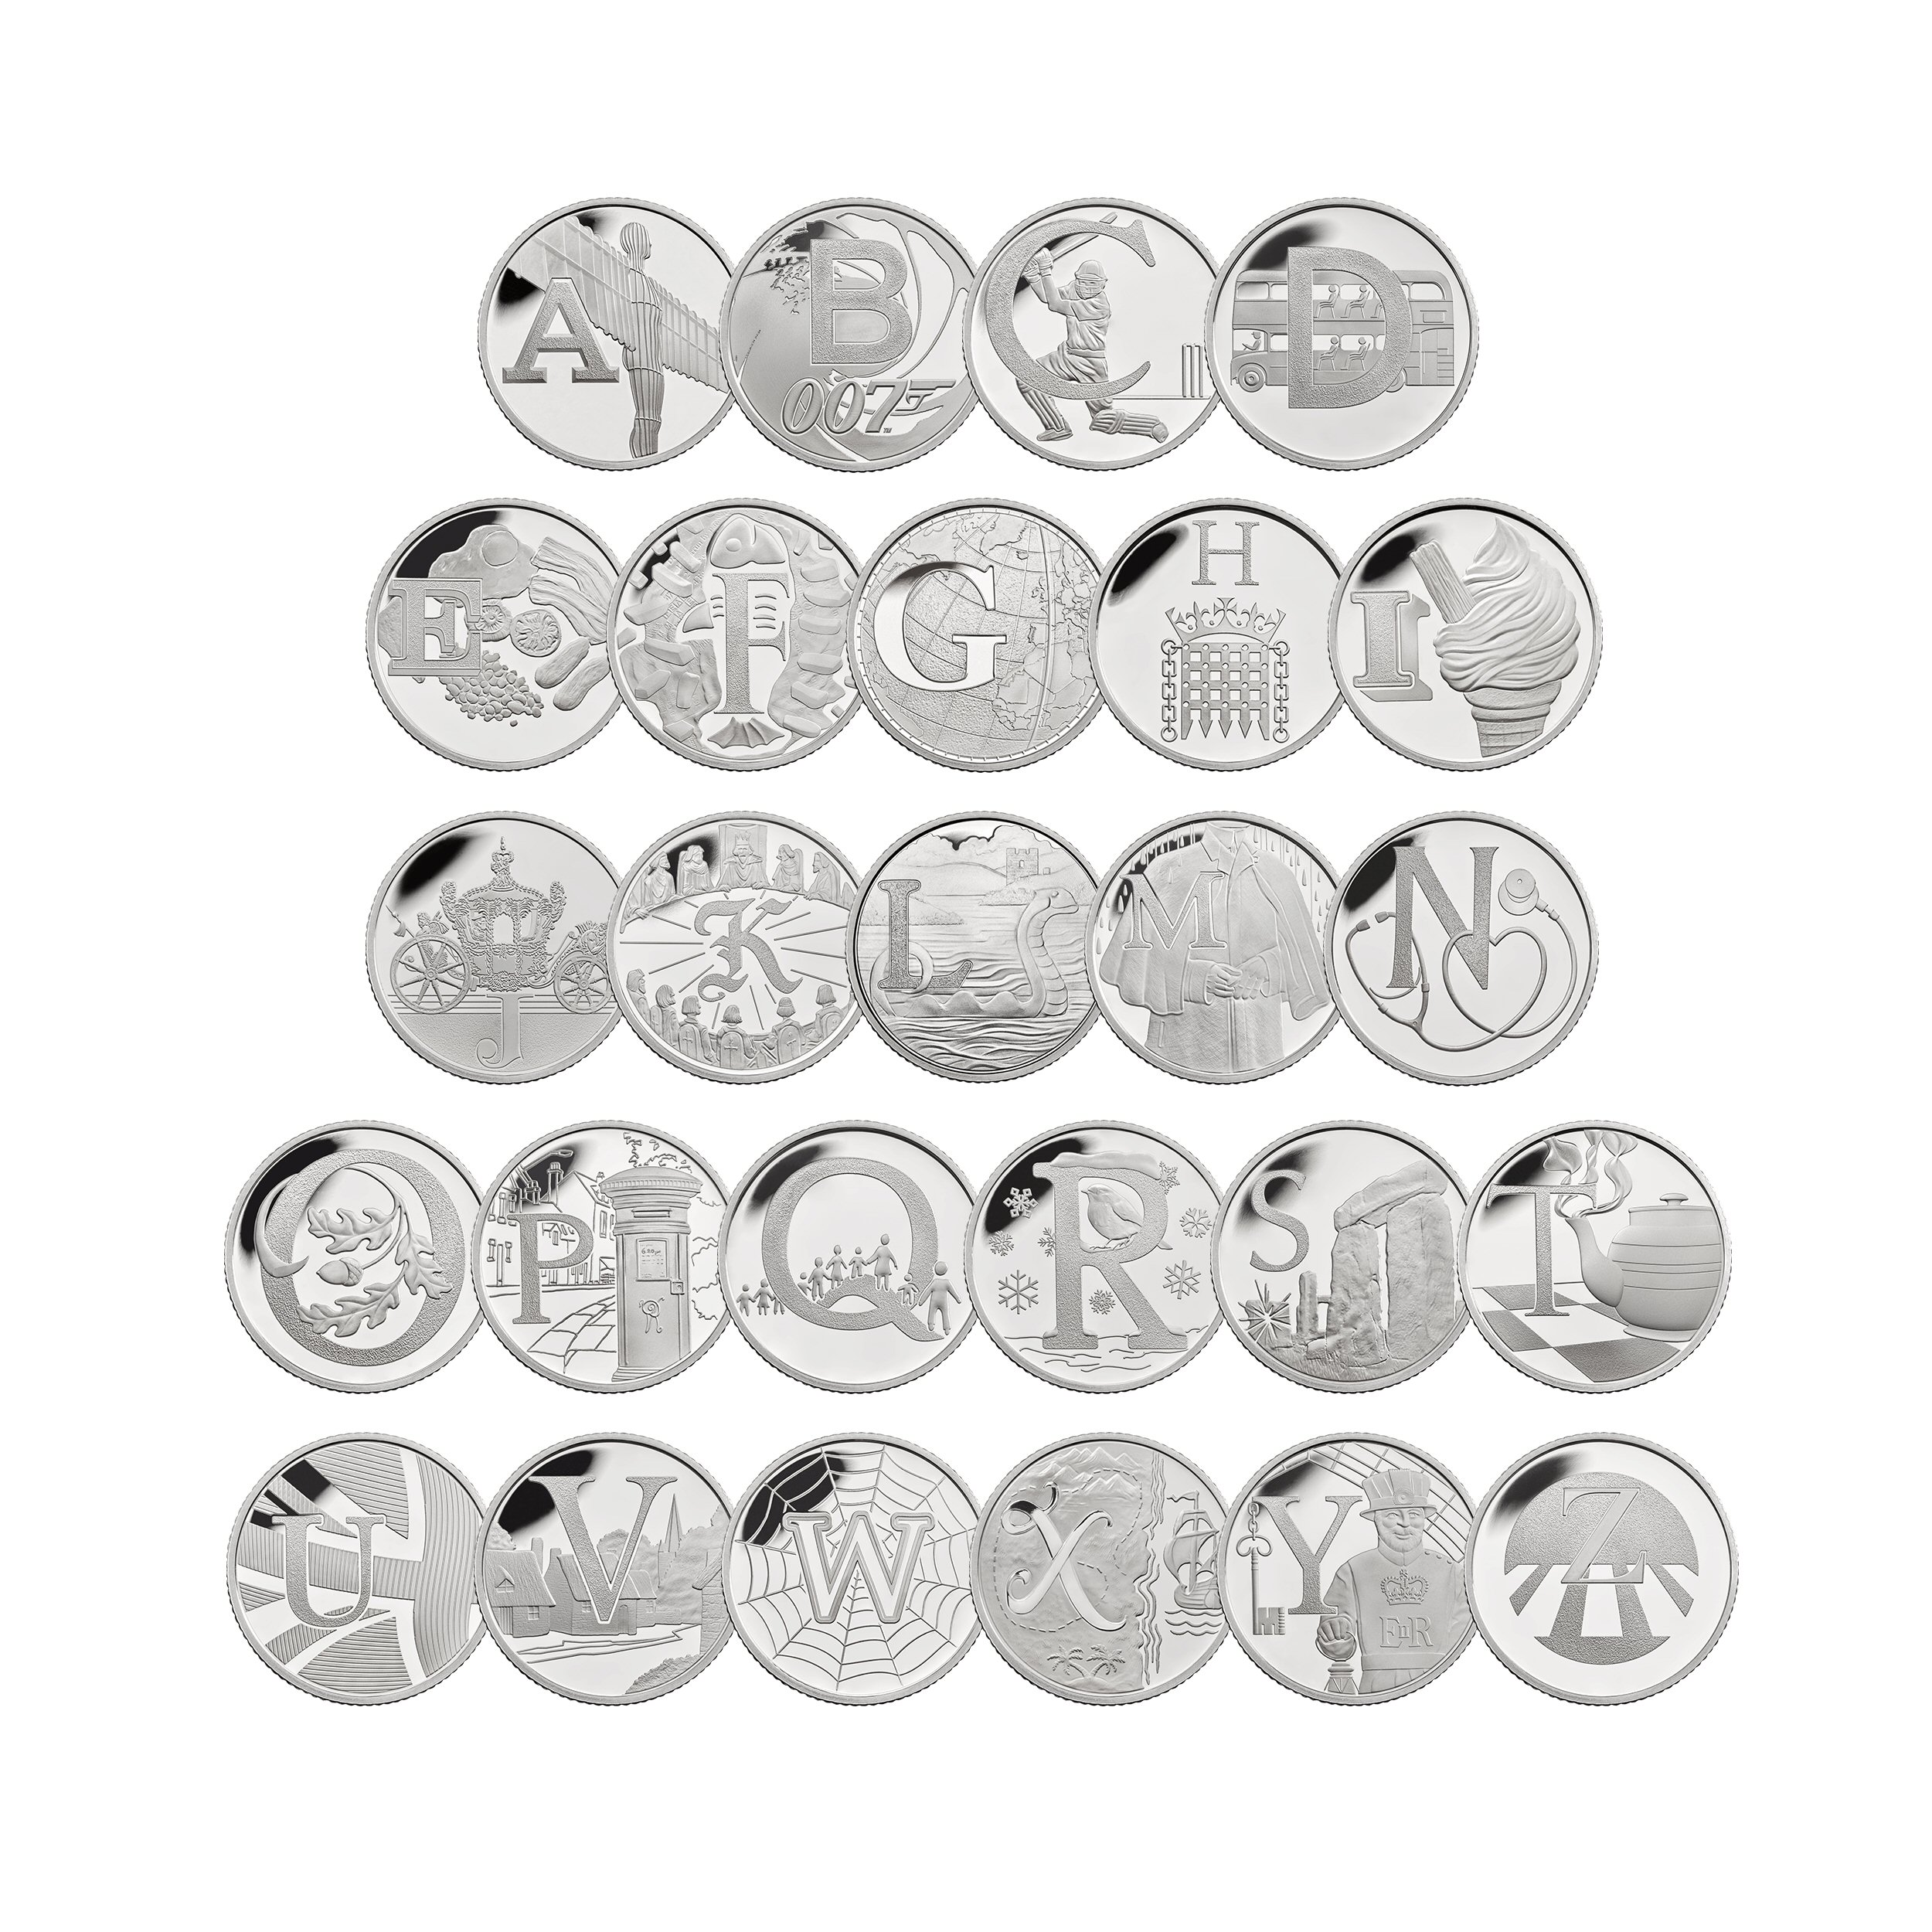 The Complete A to Z Collection 2018 UK 10p Silver Proof Coins